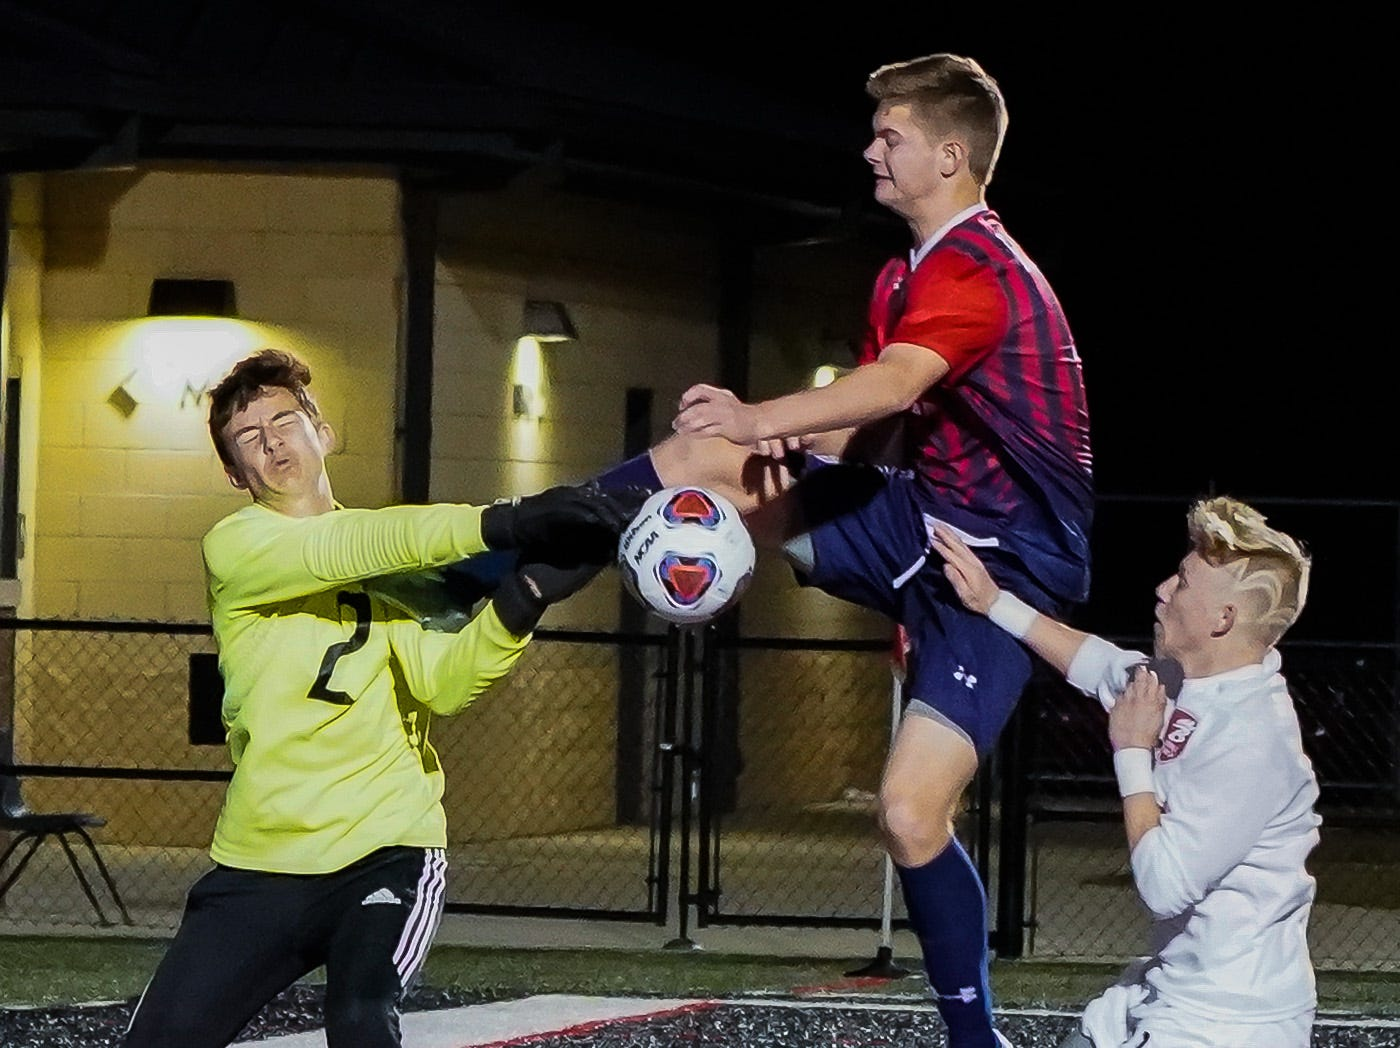 Long Beach keeper Justin Rollson (2) saves a ball against Lewisburg's Aaron Cooke during the MHSAA 5A Boys Soccer Championships held at Brandon High School in Brandon, MS, Saturday February 9, 2019.(Bob Smith-For The Clarion Ledger)